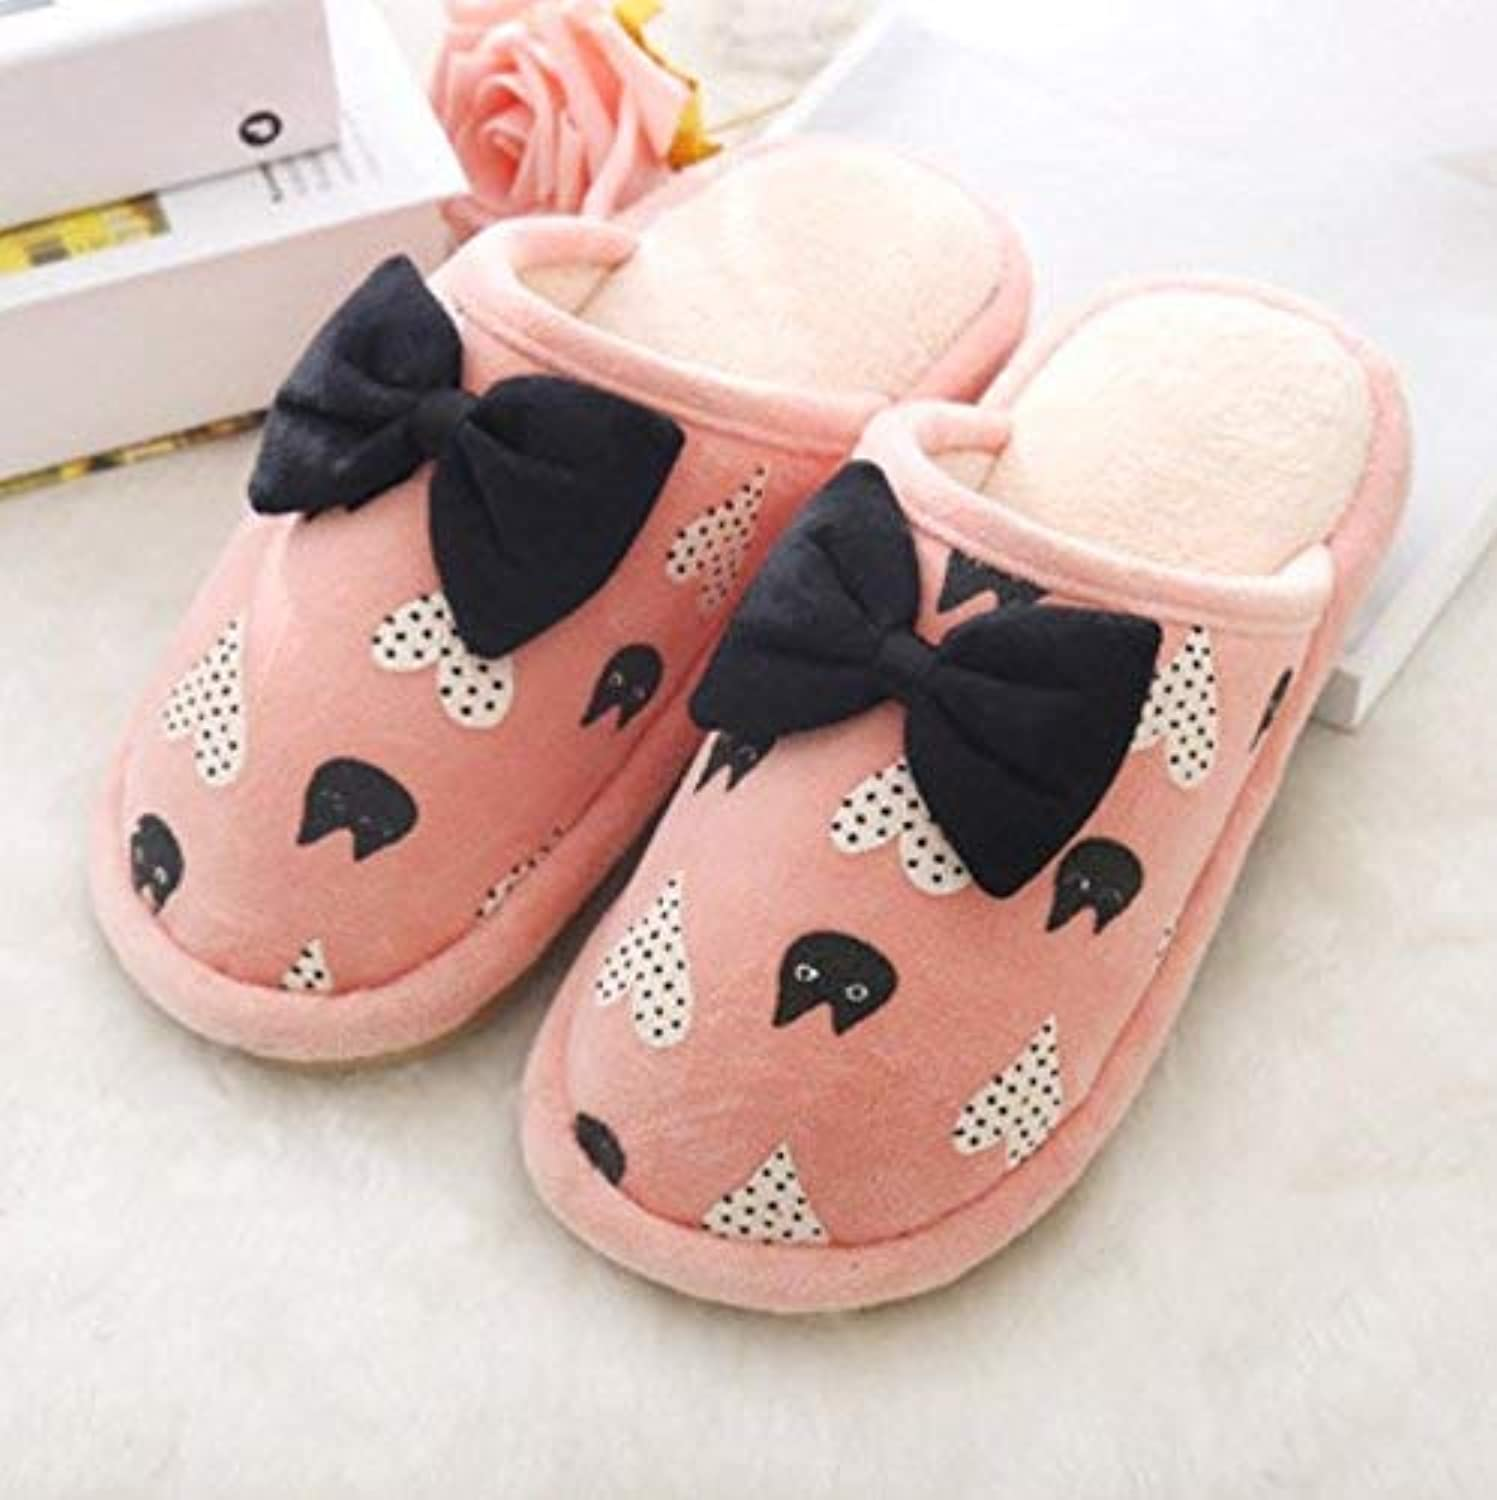 Lady Slippers Women's Home Slippers Indoor Non-Slip Warm Cotton Bow Decoration Cartoon Anti-Skip Leisure Comfortable Soft Casual Slippers